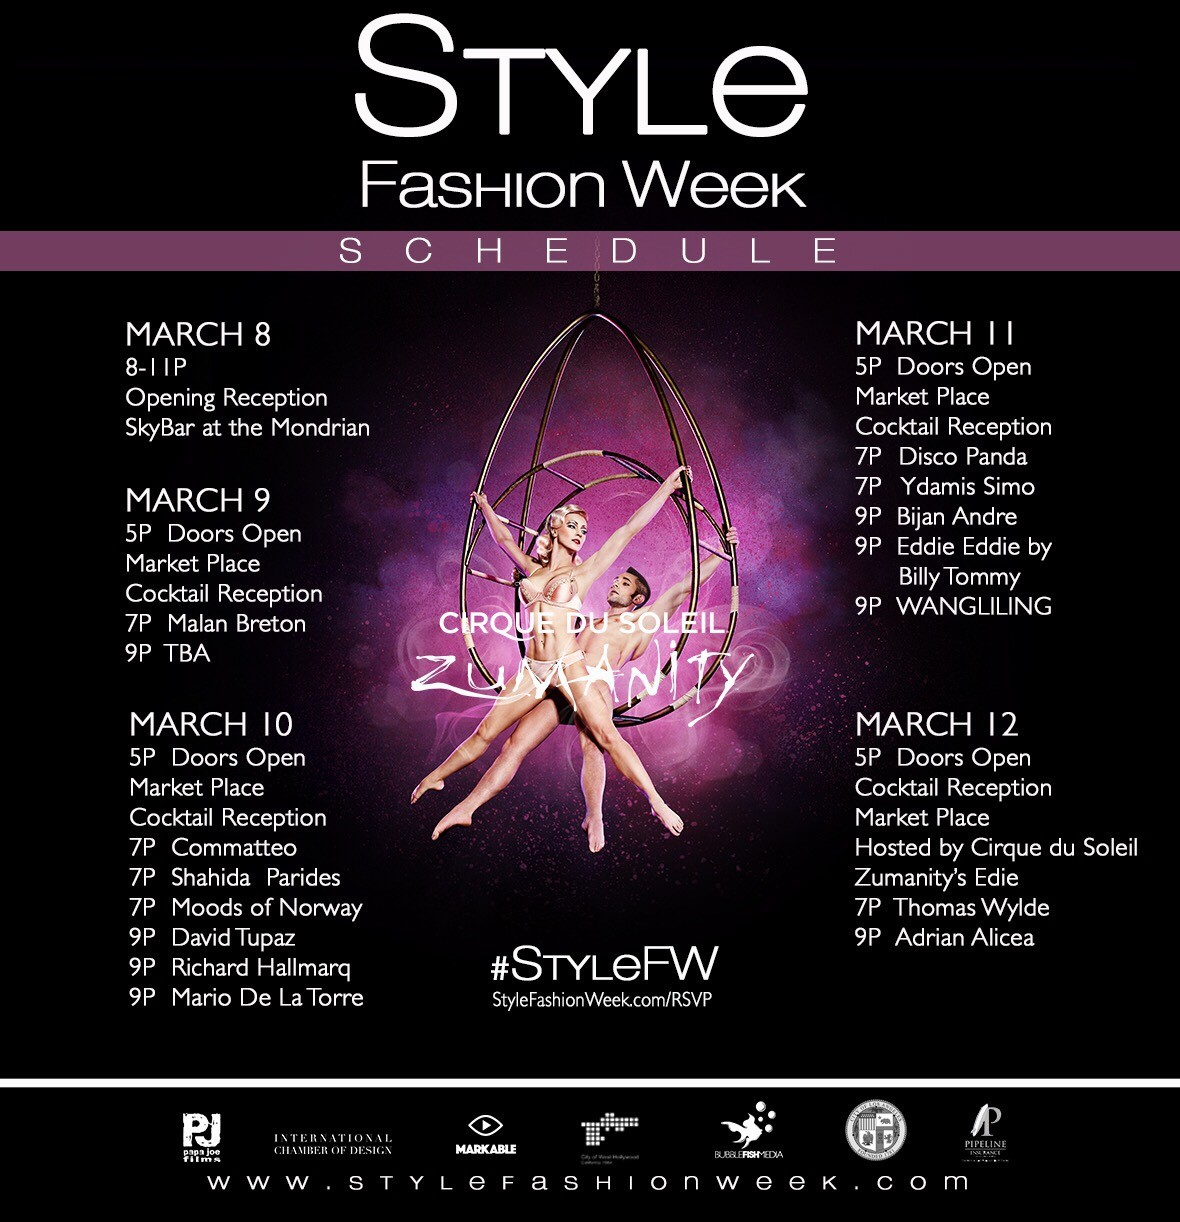 Style Fashion Week Los Angeles 39 12th Season To Feature Fashion Music And Art Spectacular At The